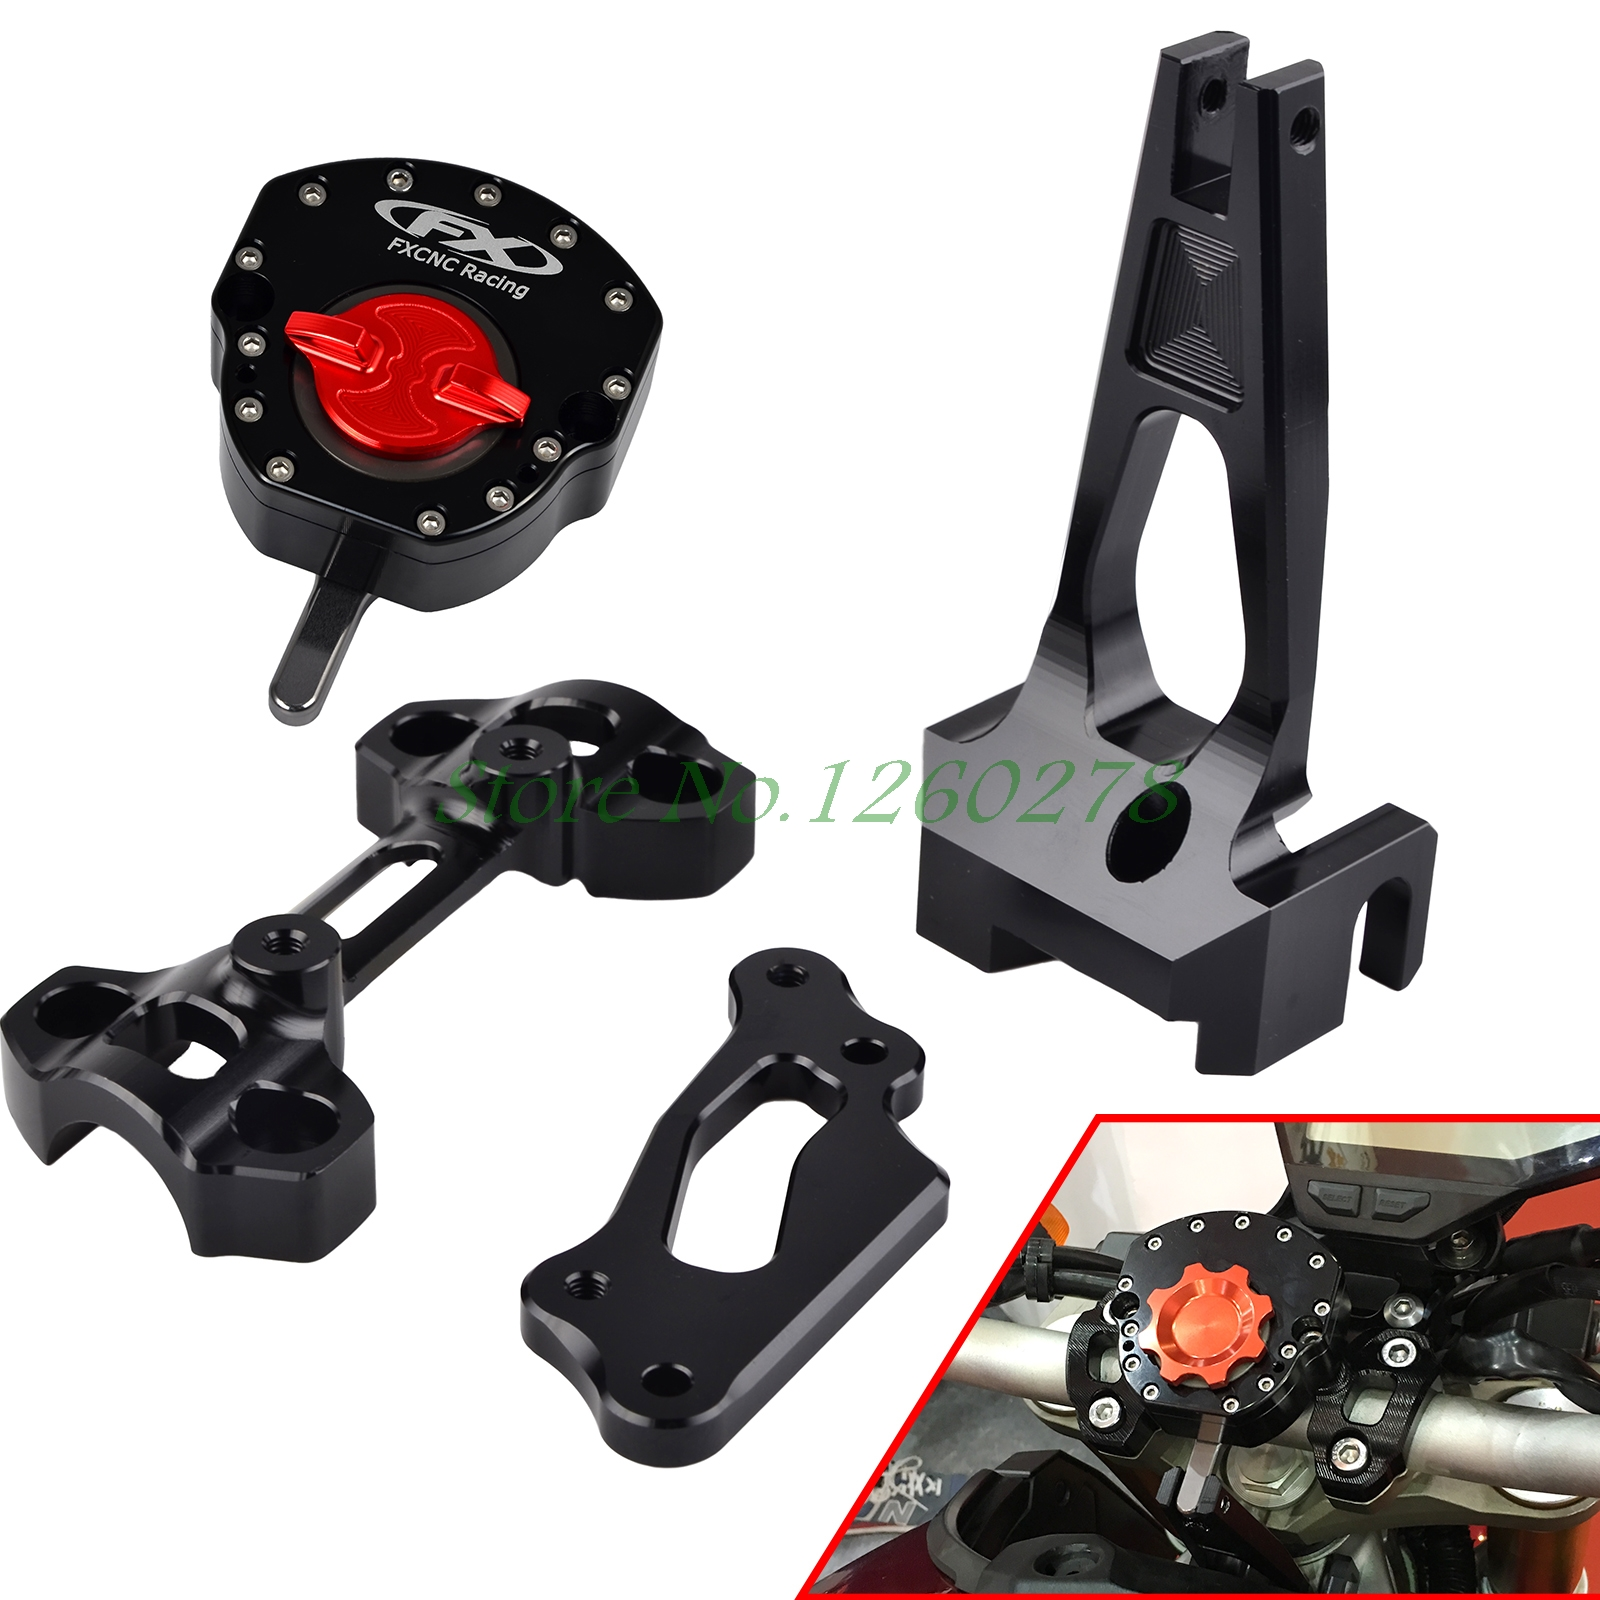 Motorcycle Steering Damper Stabilizer with Mounting Bracket Kit For Yamaha MT09 MT-09 FZ09 FZ-09 2014 2015 2016 new black motorcycle steering damper stabilizer with mounting bracket kit for yamaha mt09 mt 09 fz 09 2014 2015 2016